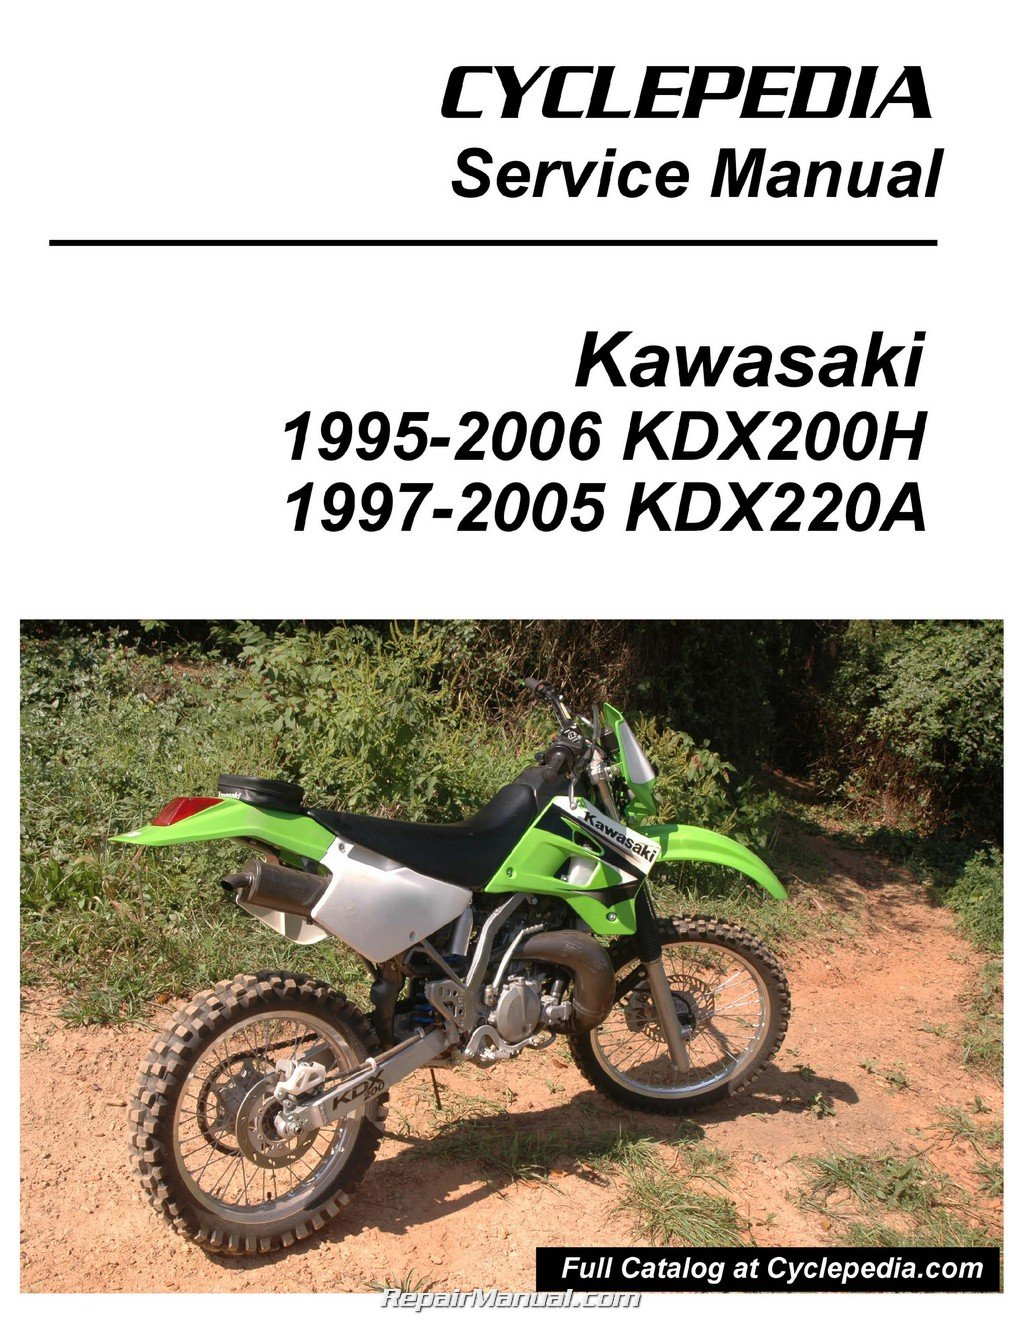 CPP-102-P Kawasaki KDX200H KDX220A Cyclepedia Printed Motorcycle Service  Manual: Manufacturer: Amazon.com: Books